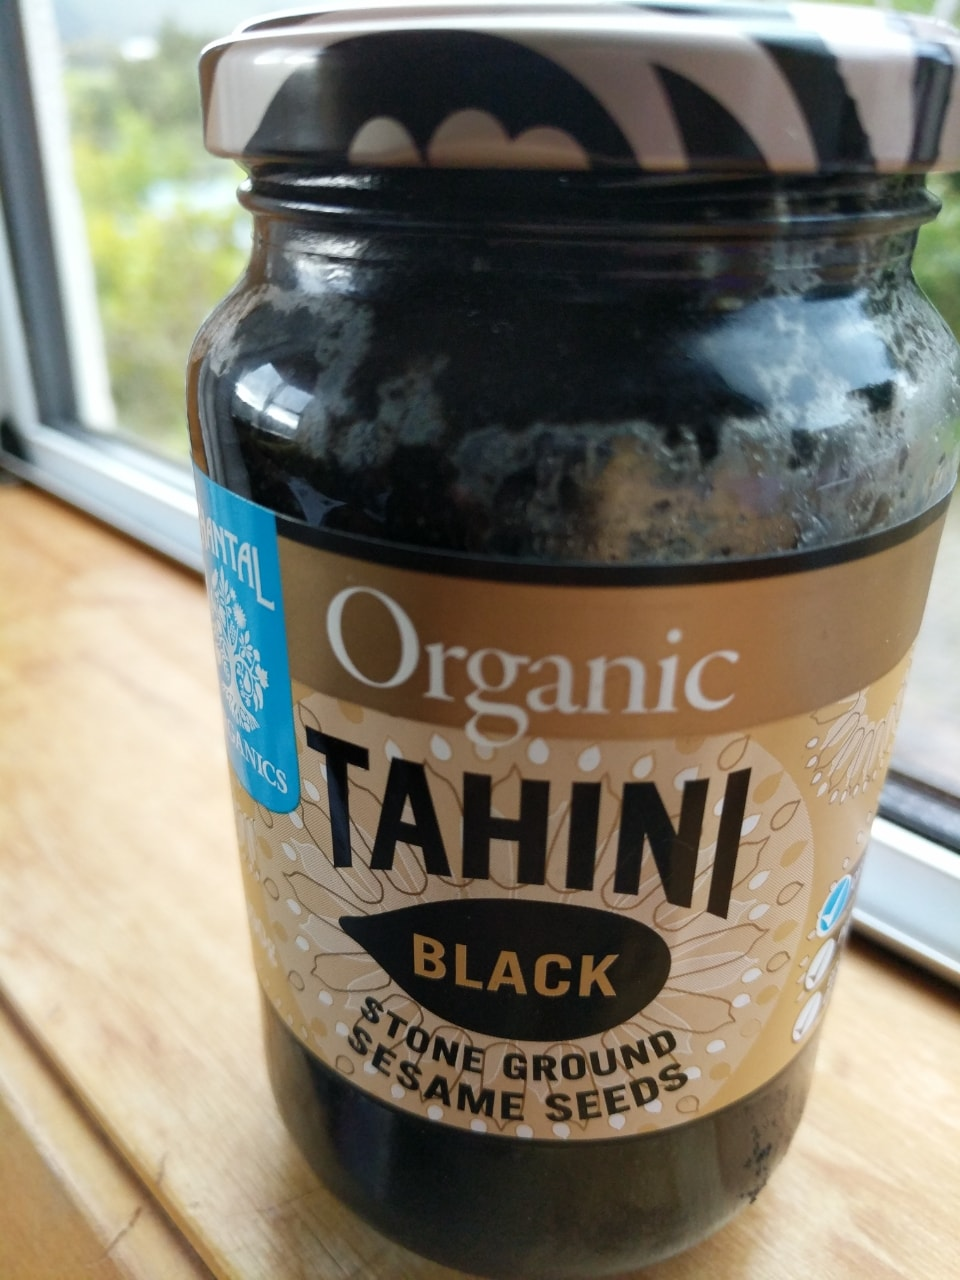 Black Stone ground sesame seeds